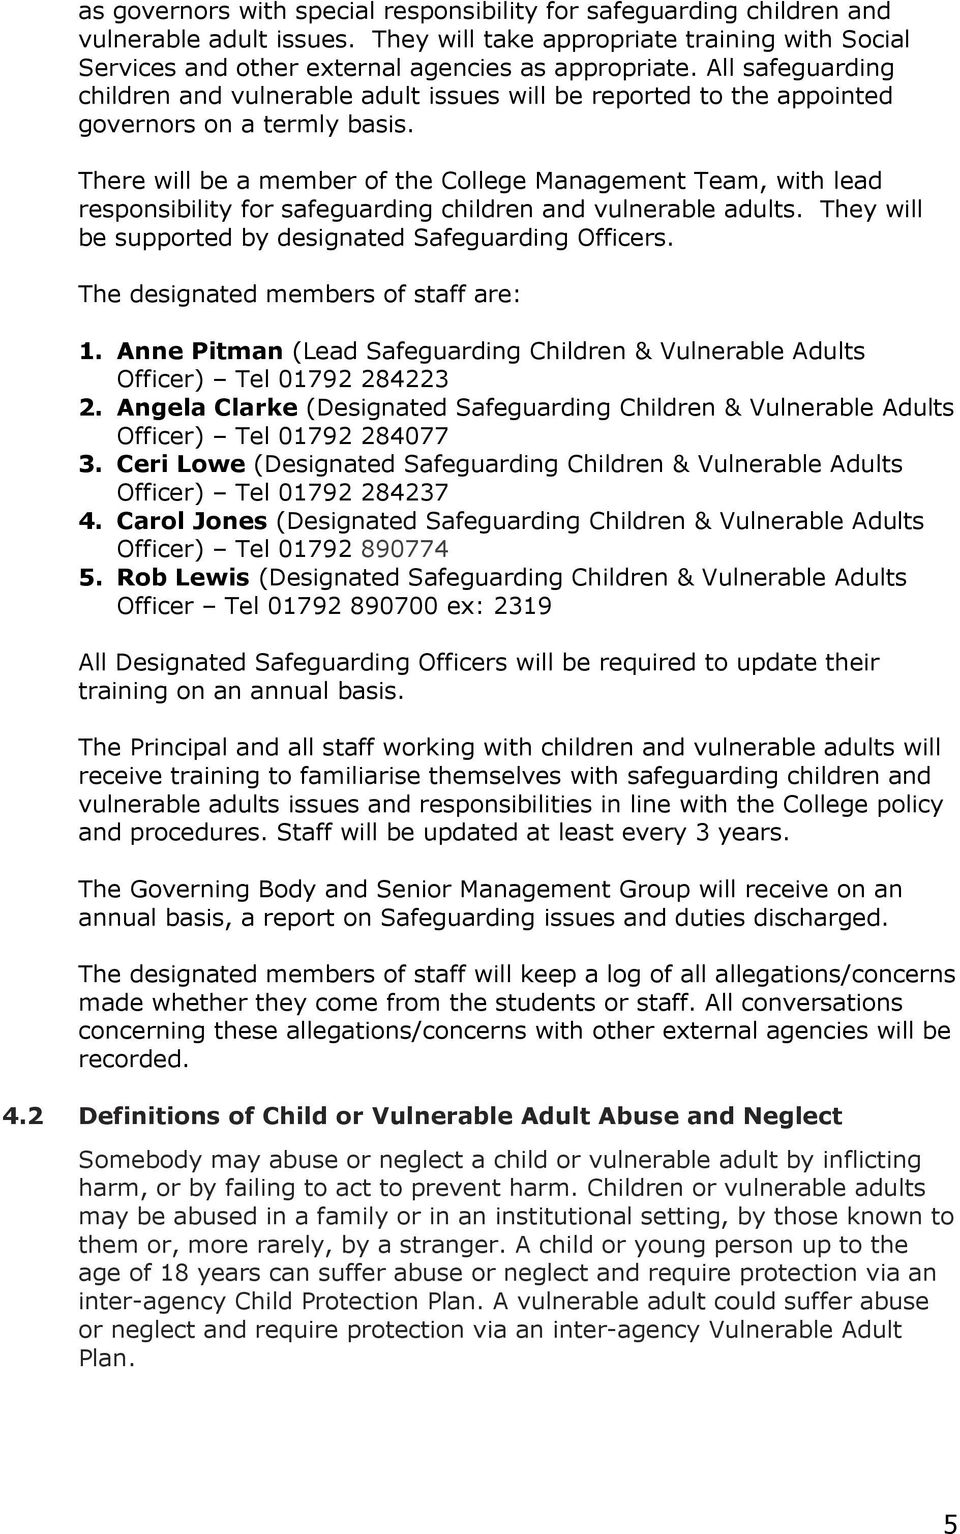 There will be a member of the College Management Team, with lead responsibility for safeguarding children and vulnerable adults. They will be supported by designated Safeguarding Officers.